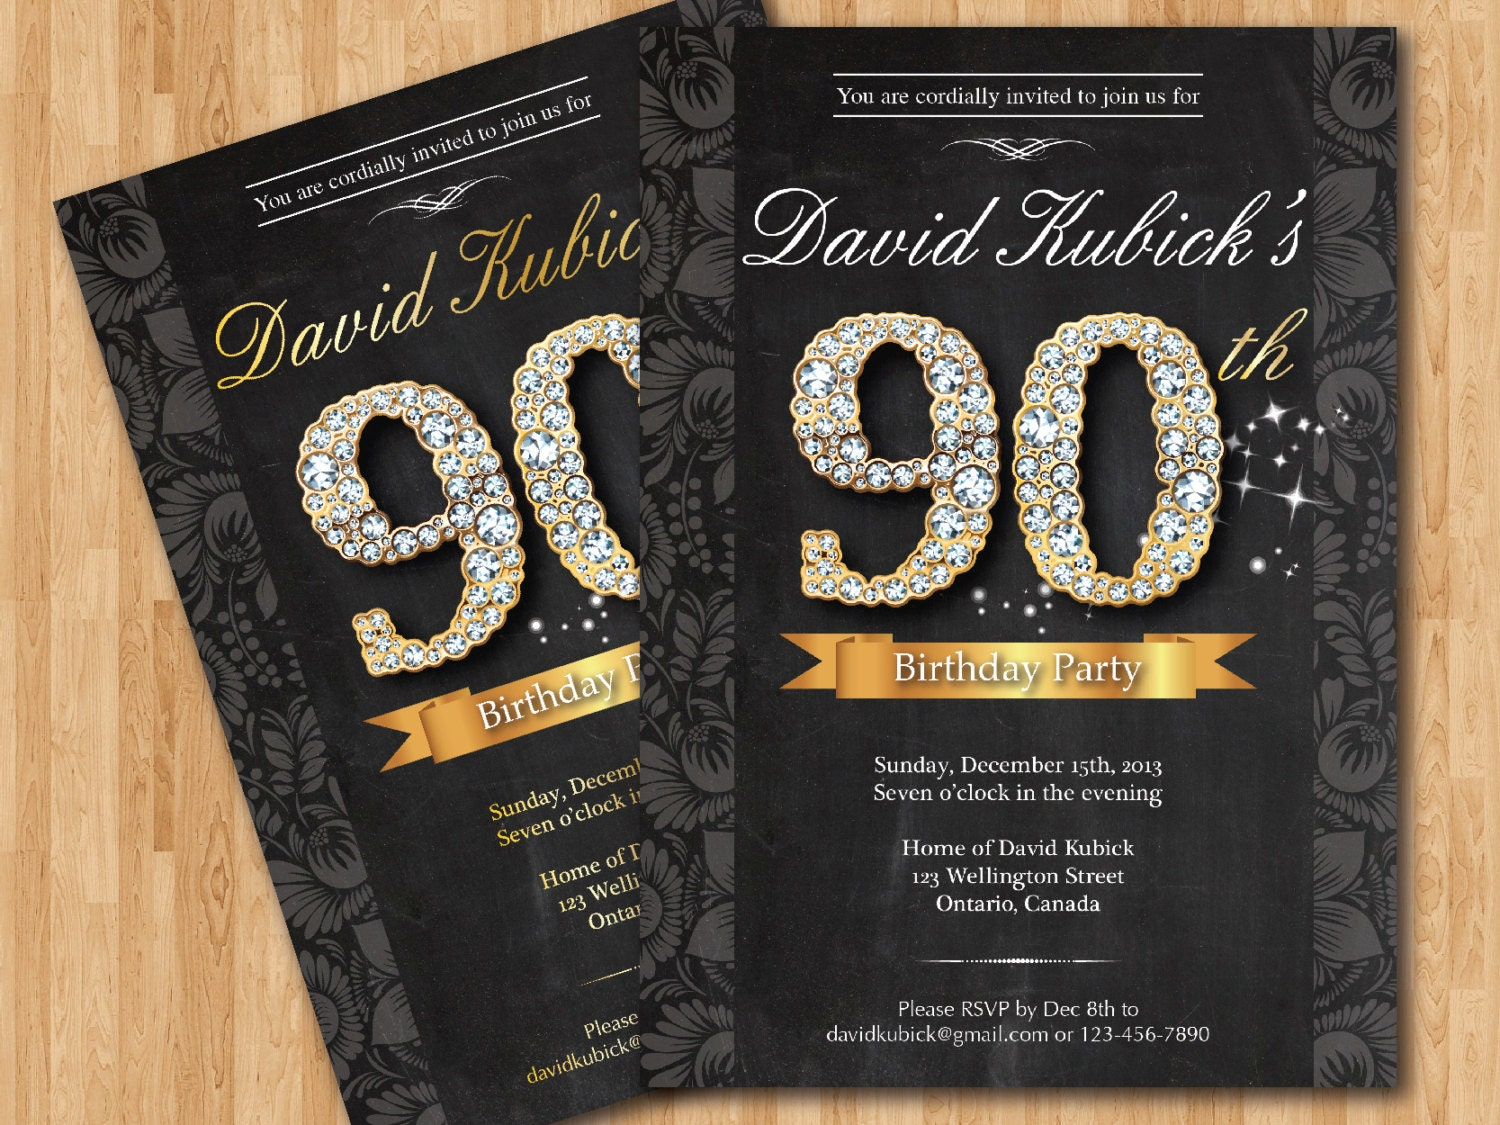 90th Birthday Party Invitations Wording New All White Invitation Awesome Black And